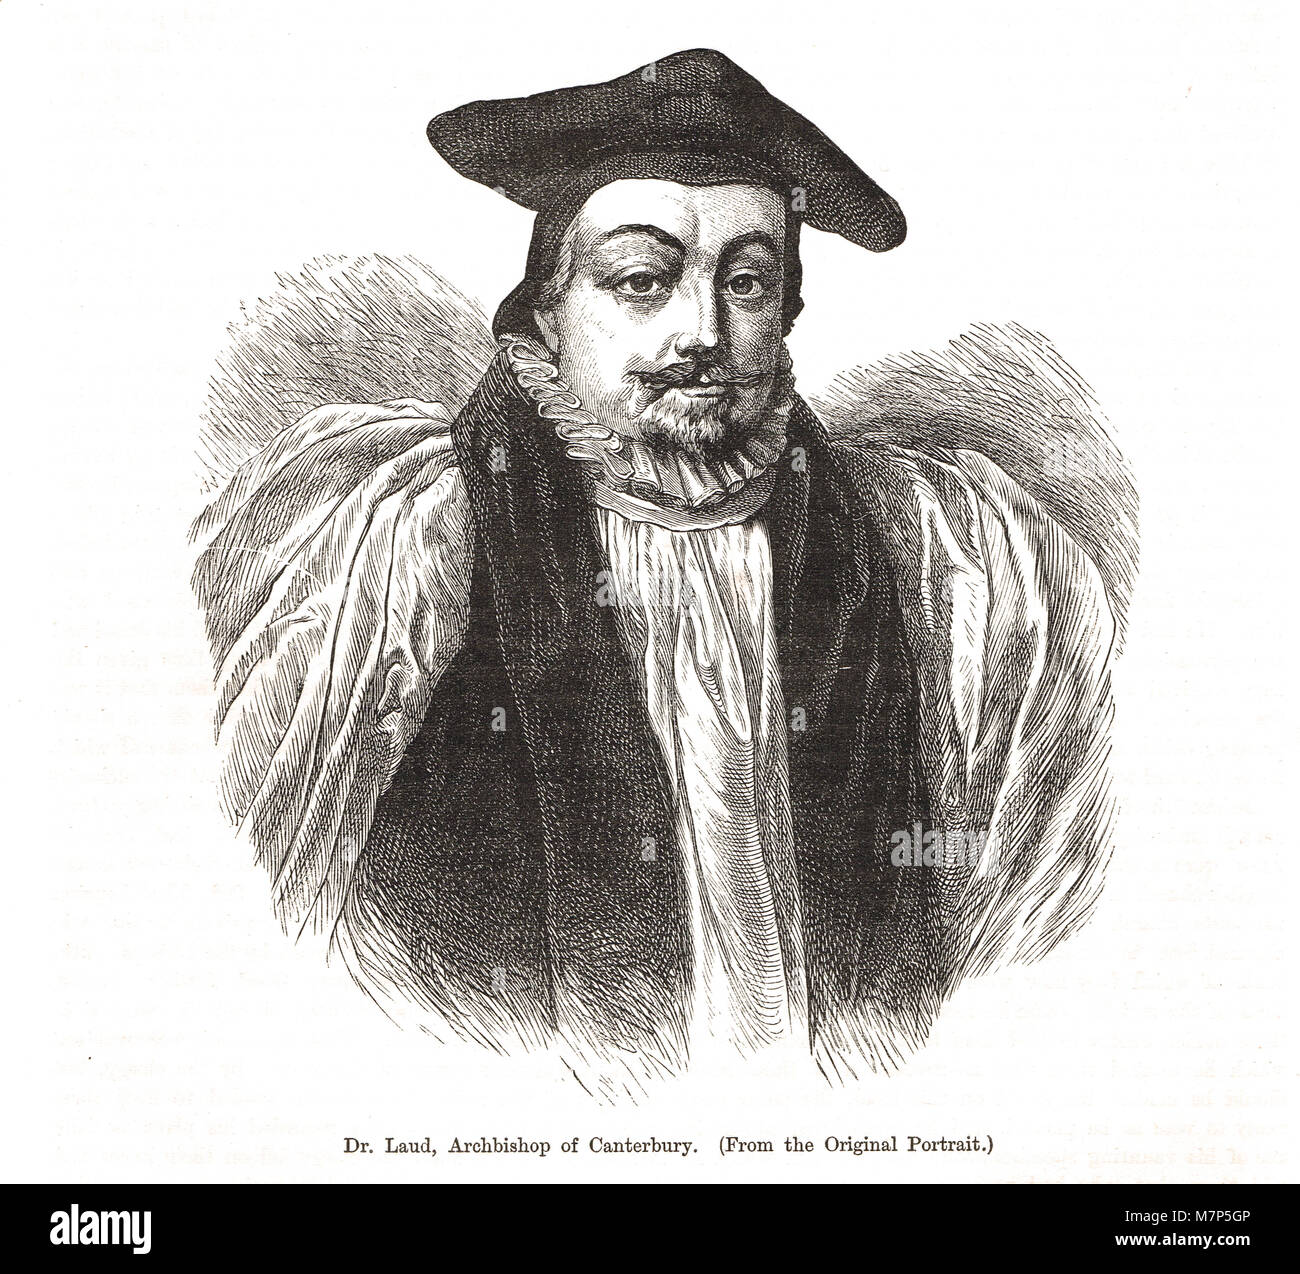 Archbishop William Laud, 1573-1645, Archbishop of Canterbury from 1633, Eleven Years' Tyranny, during the personal - Stock Image